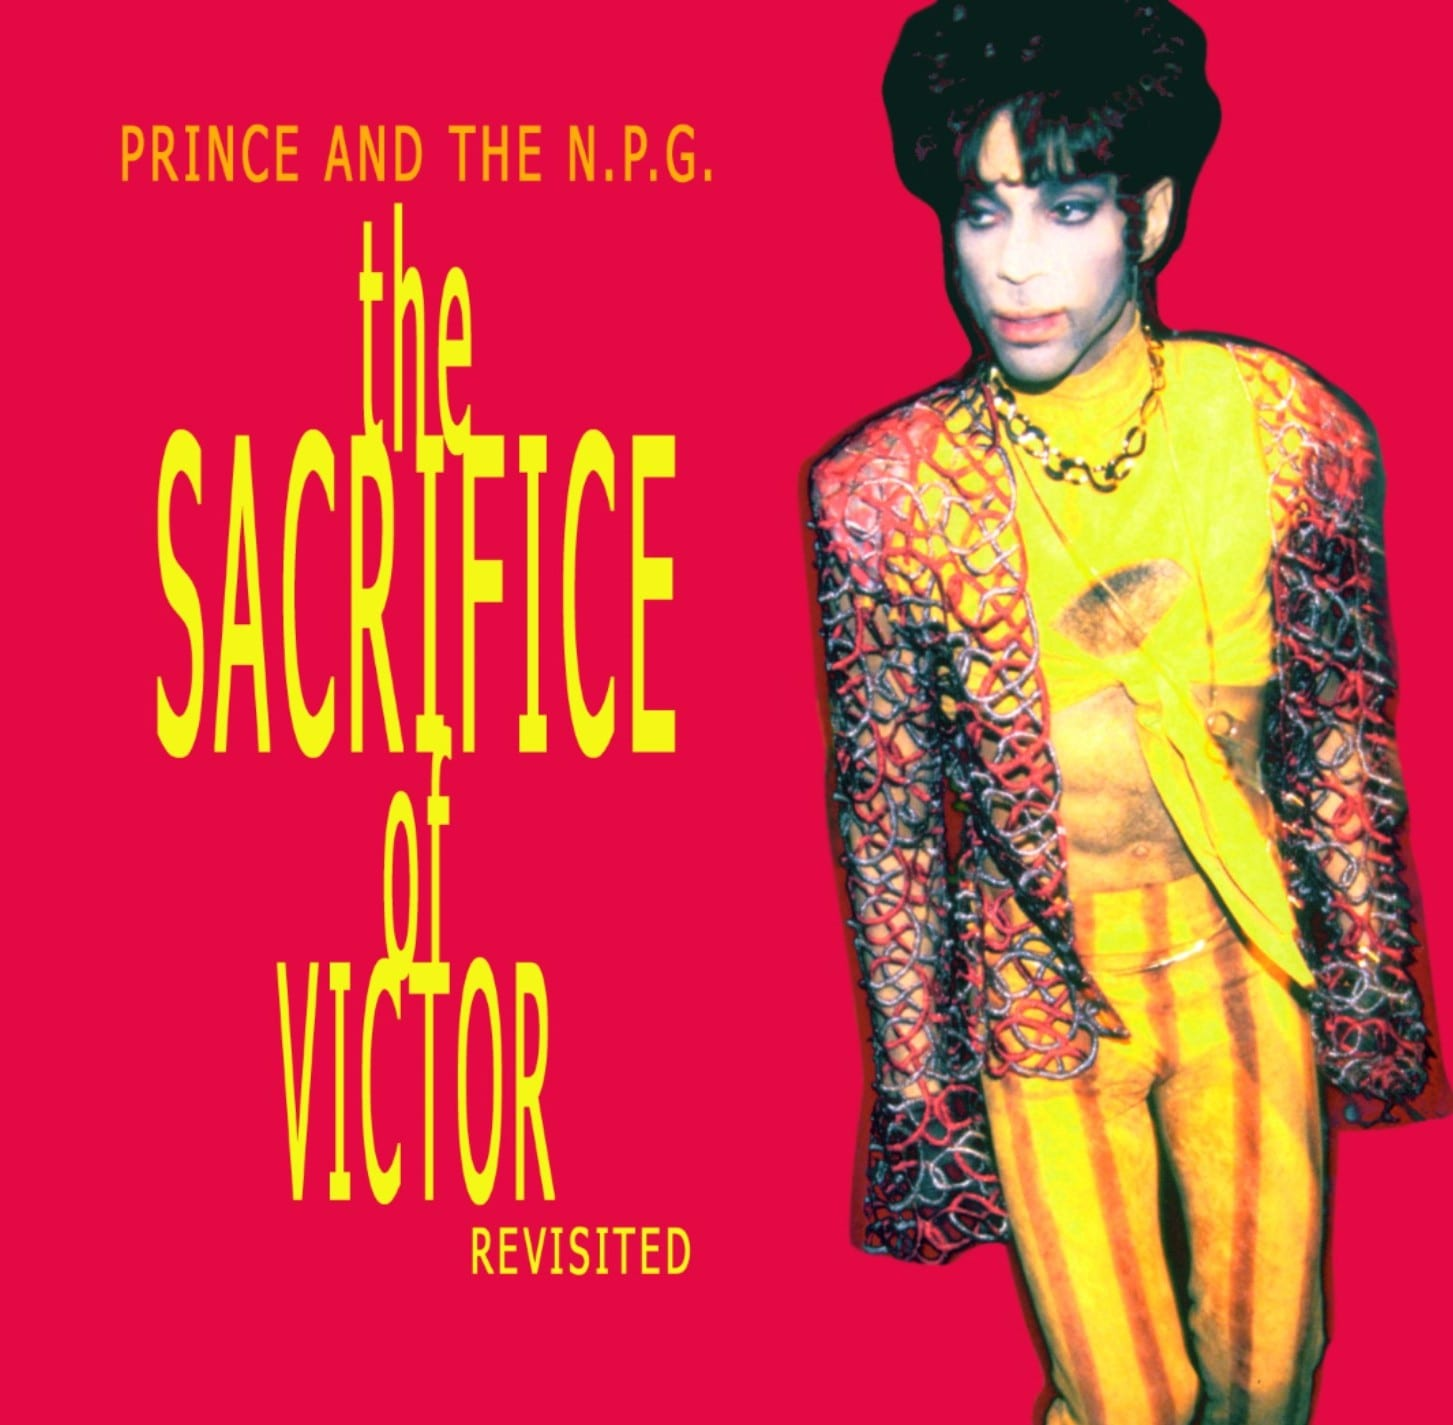 Prince - The Sacrifice Of Victor Revisited (1993) CD 7